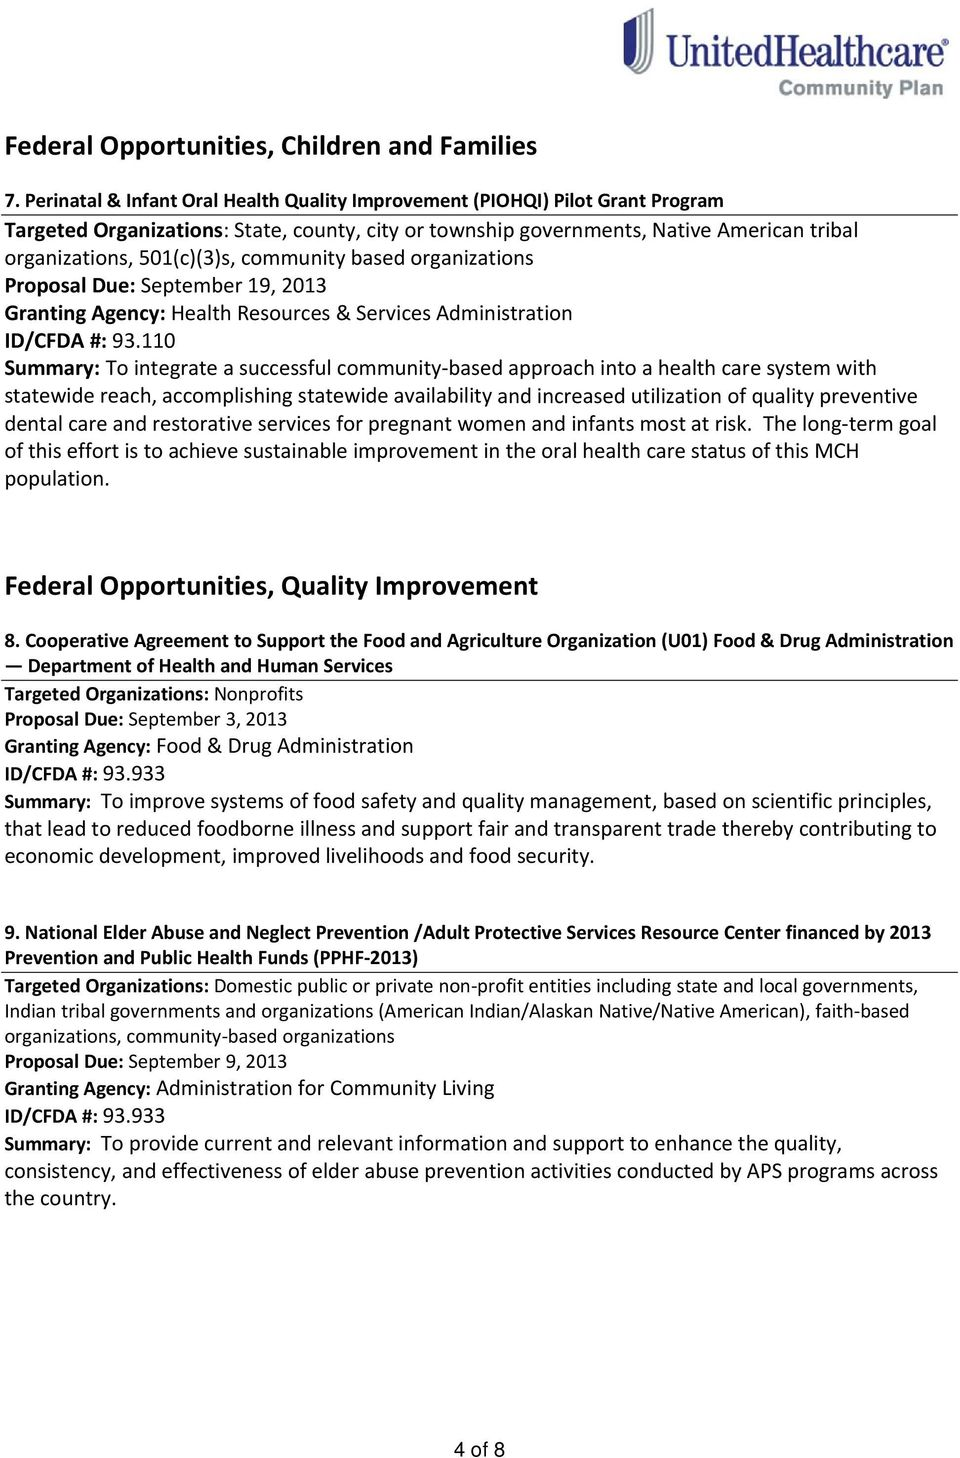 community based organizations Proposal Due: September 19, 2013 Granting Agency: Health Resources & Services Administration ID/CFDA #: 93.